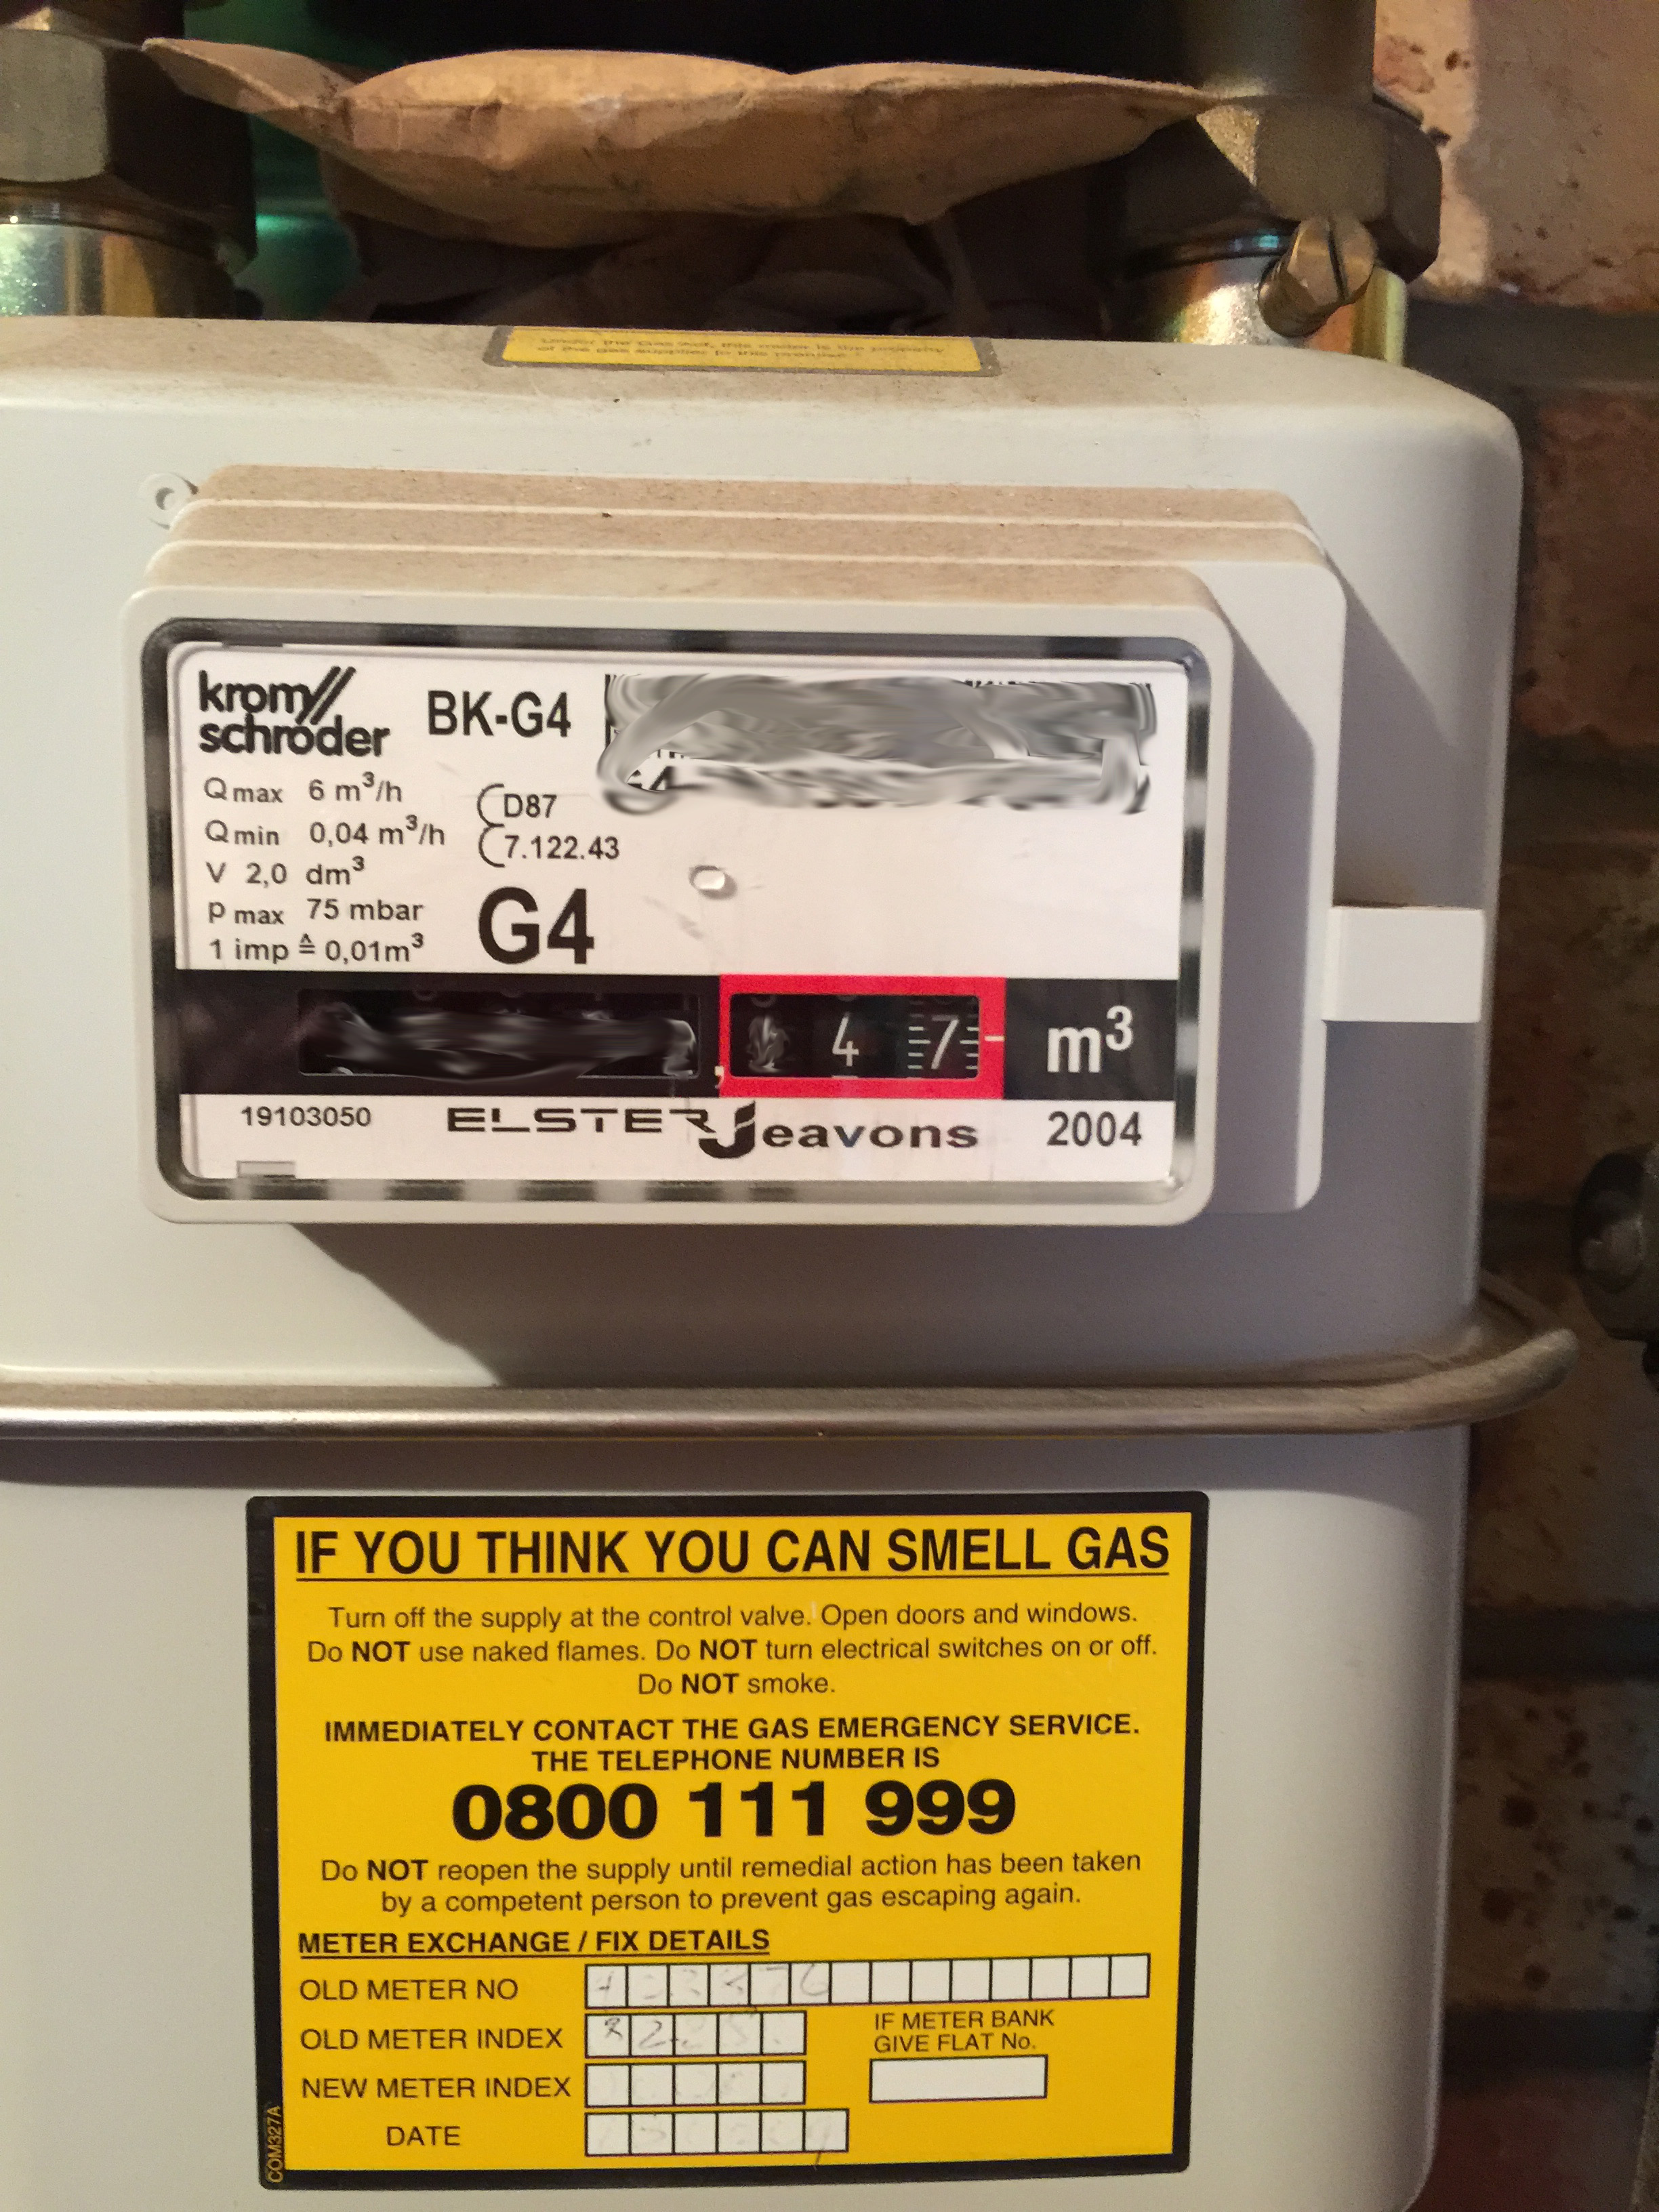 I'm not sure what a naughty hacker could do with my gas meter number, but I'm taking no chances....